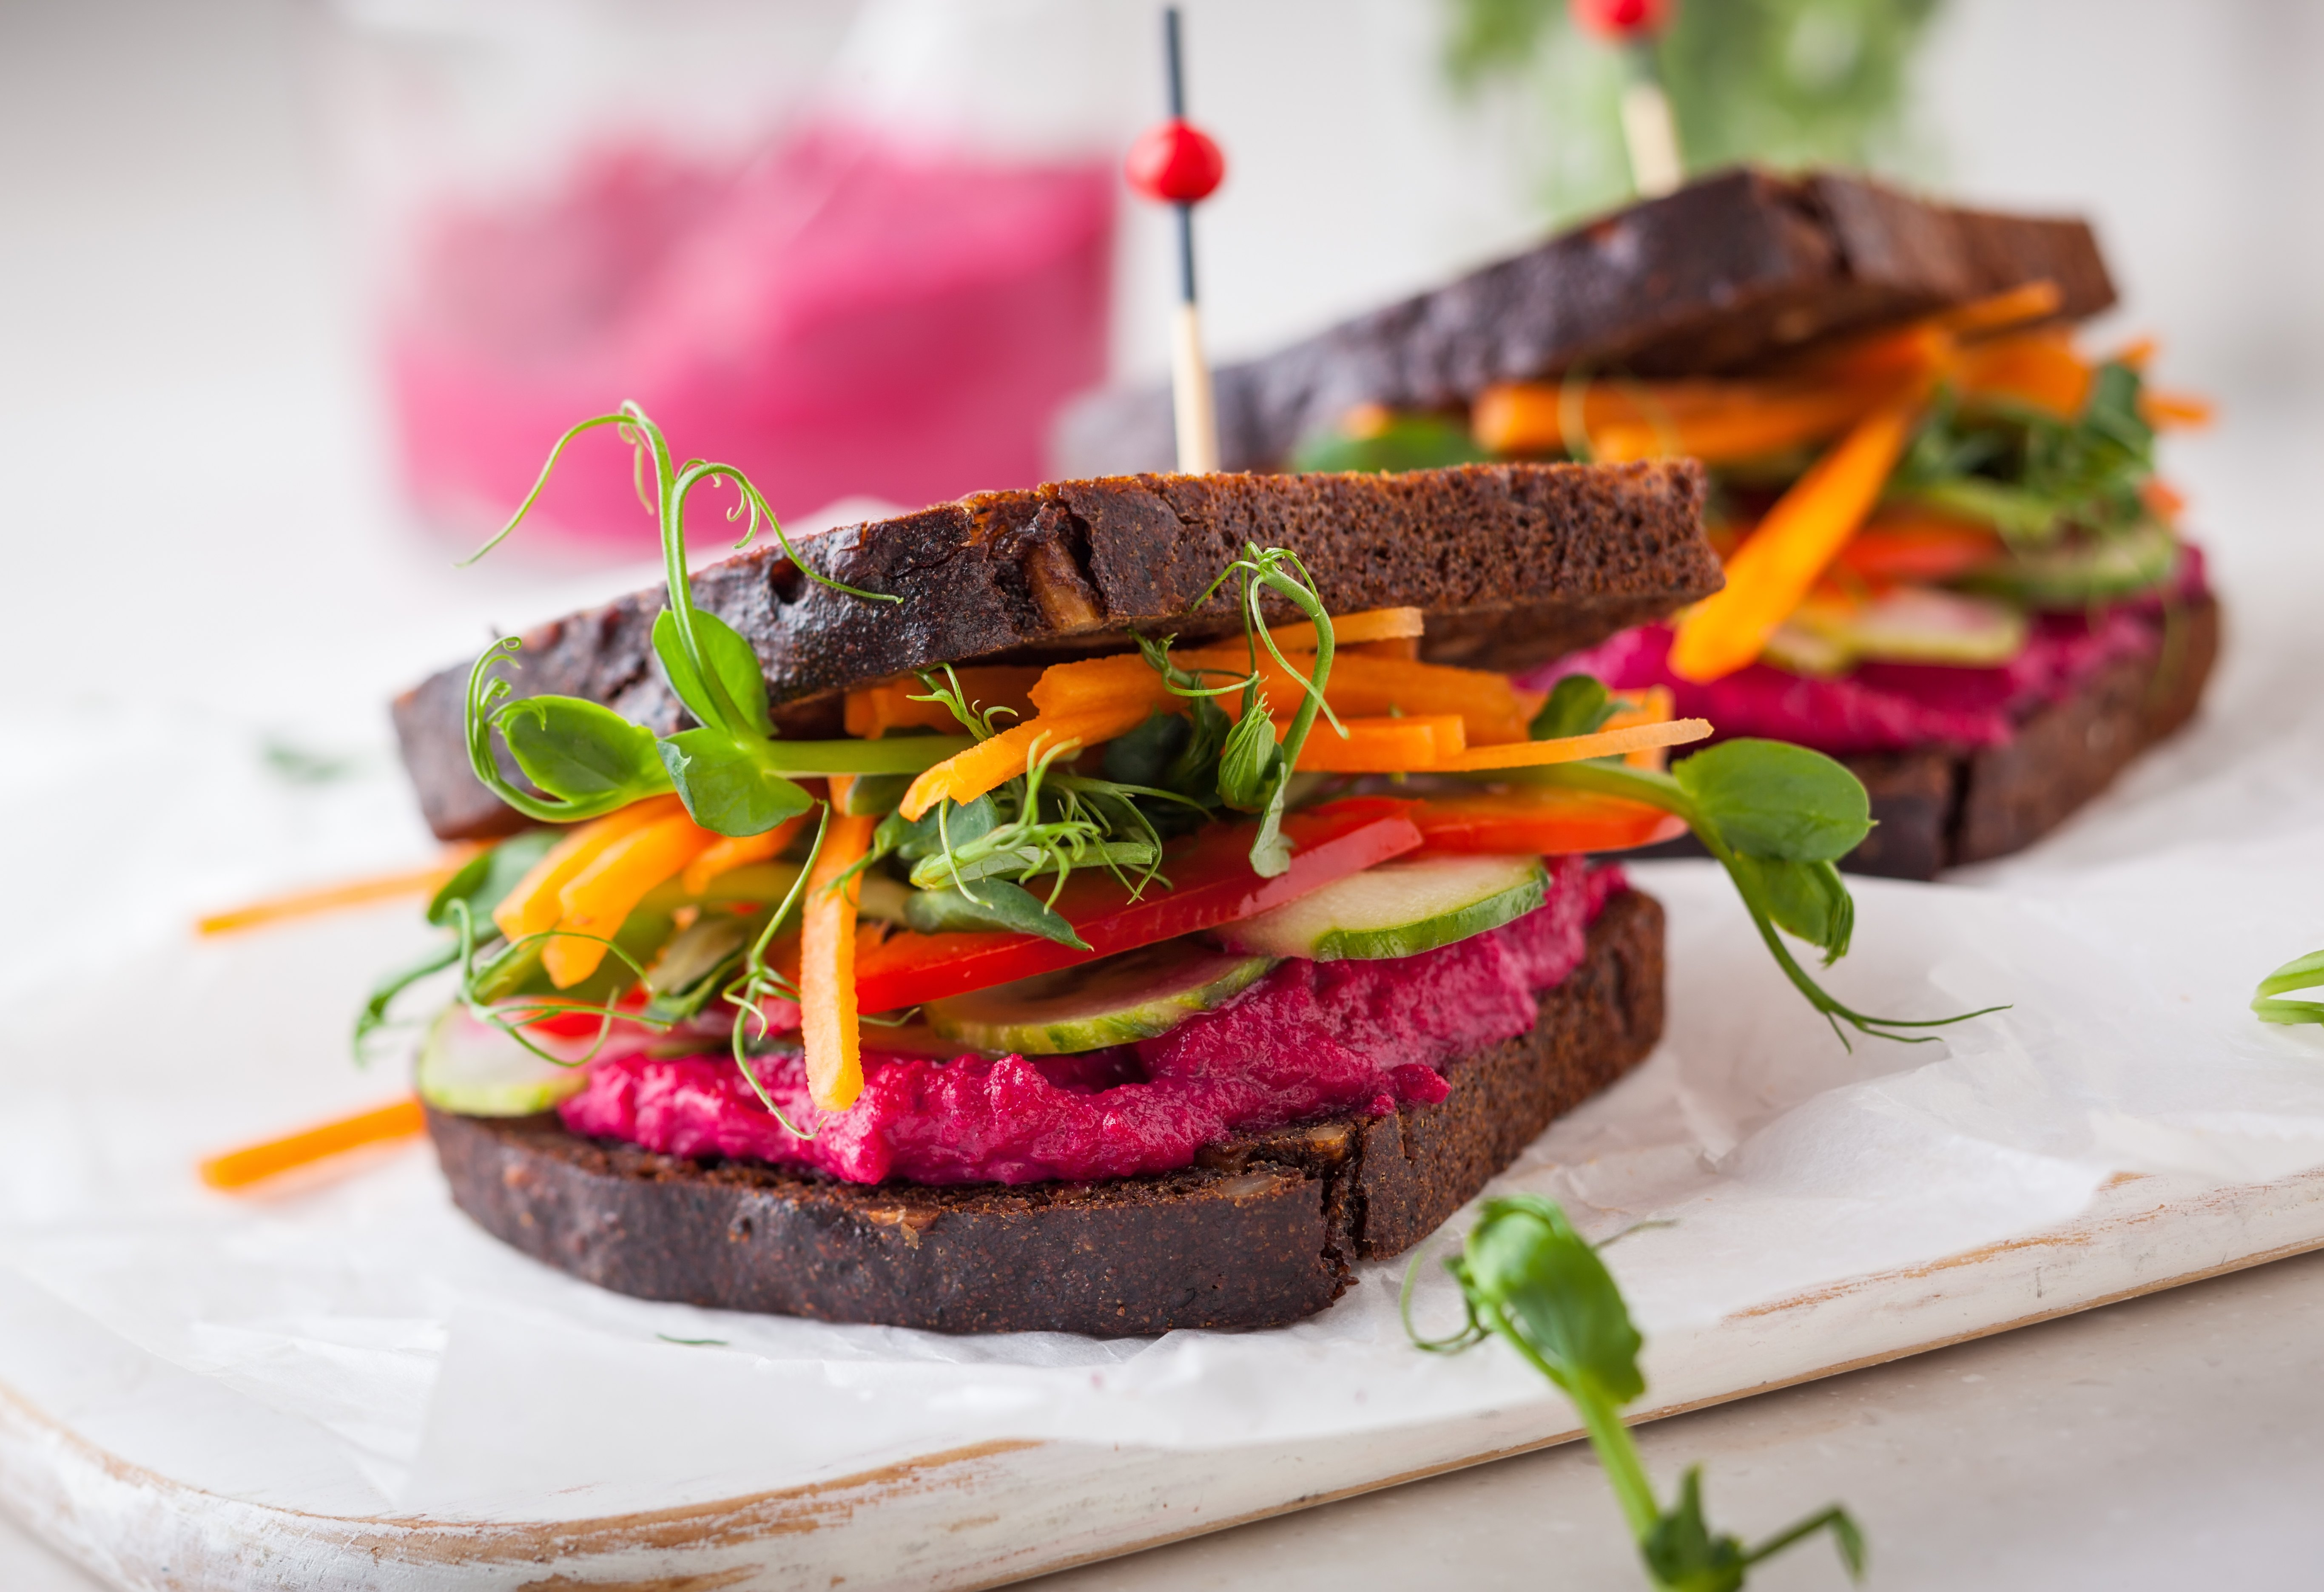 5 Reasons to Eat Just a Little Bit Less Meat